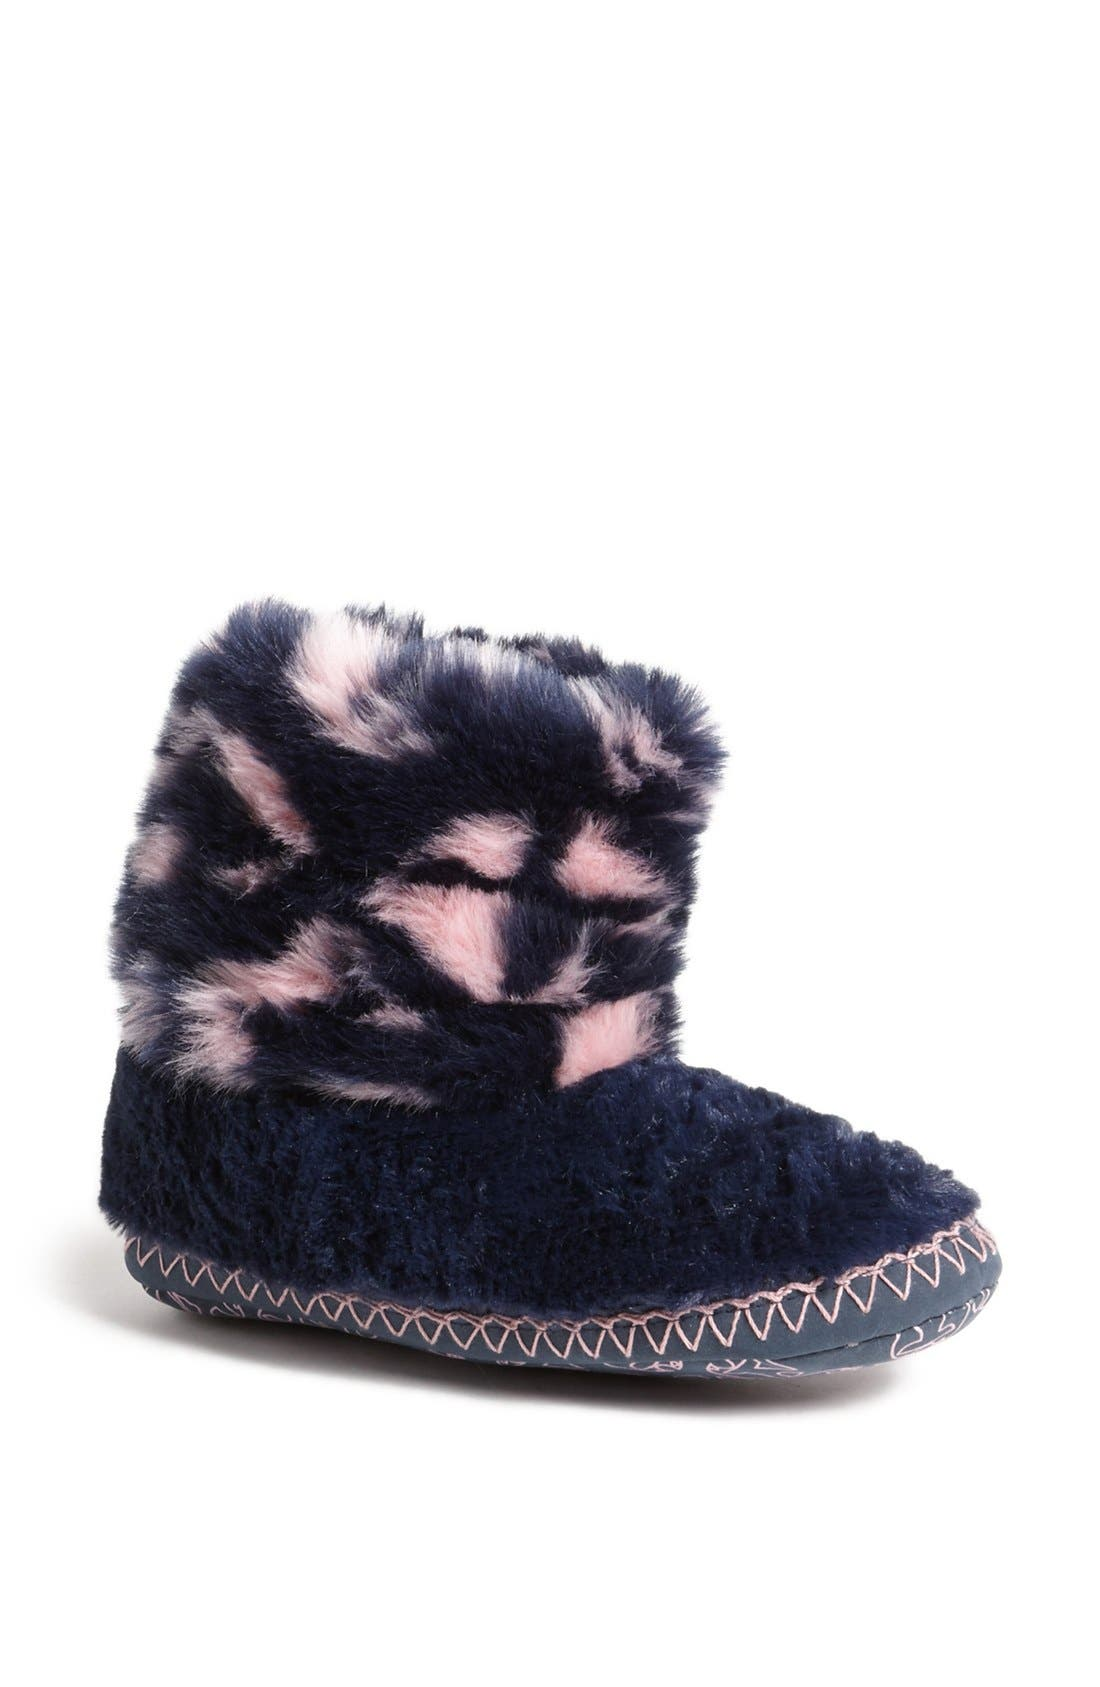 Alternate Image 2  - Bedroom Athletics 'Sophia' Faux Fur Bootie Slipper